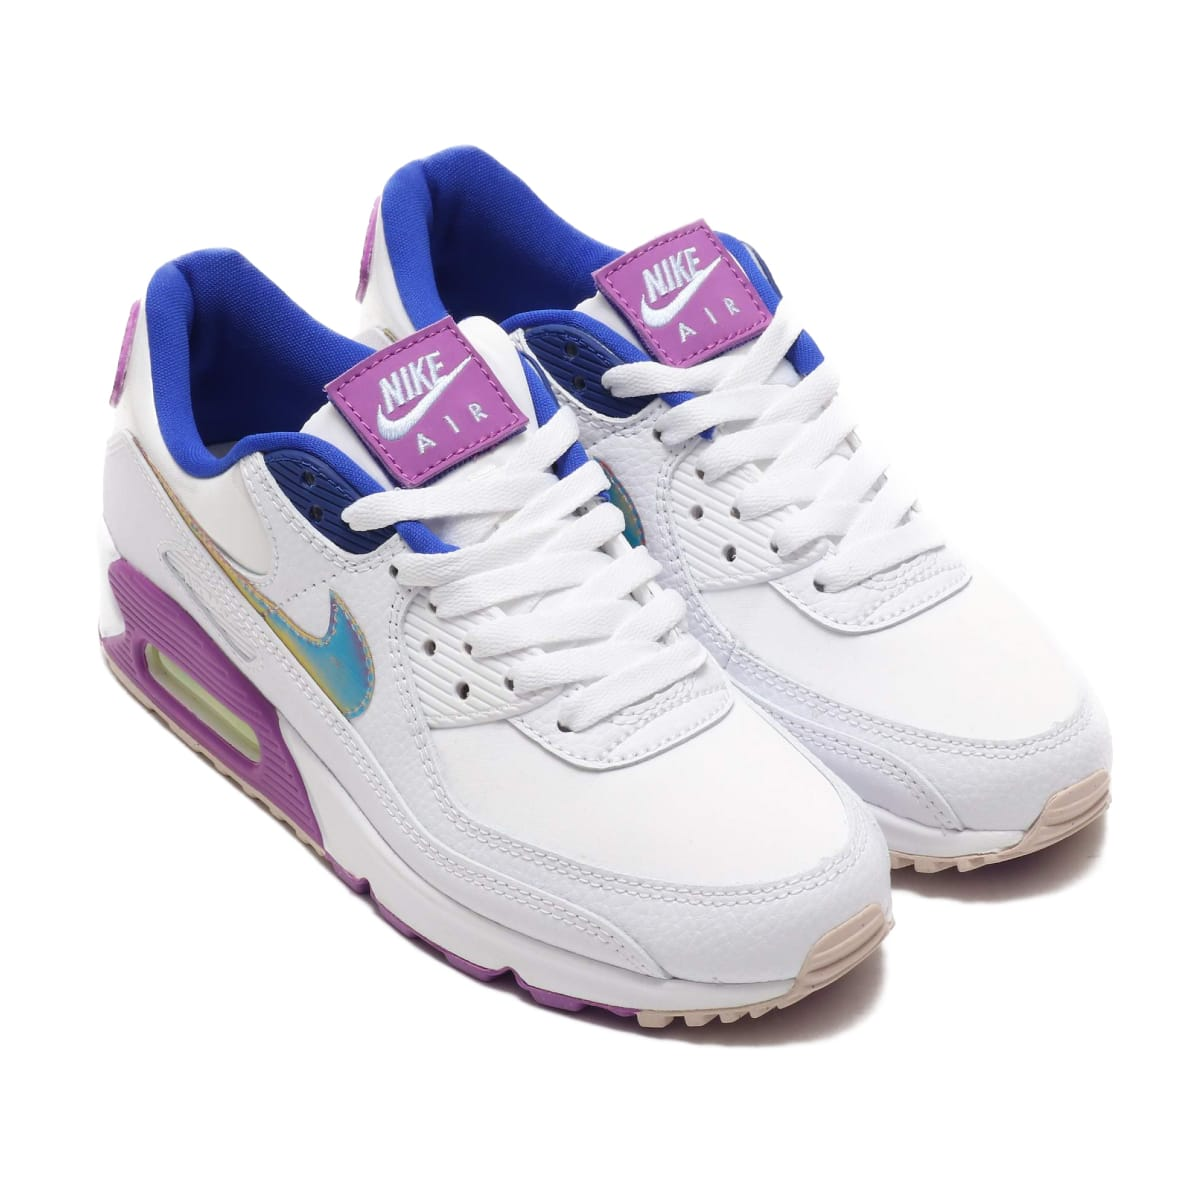 NIKE W AIR MAX 90 SE WHITE/MULTI-COLOR-PURPLE NEBULA 20SU-I_photo_large